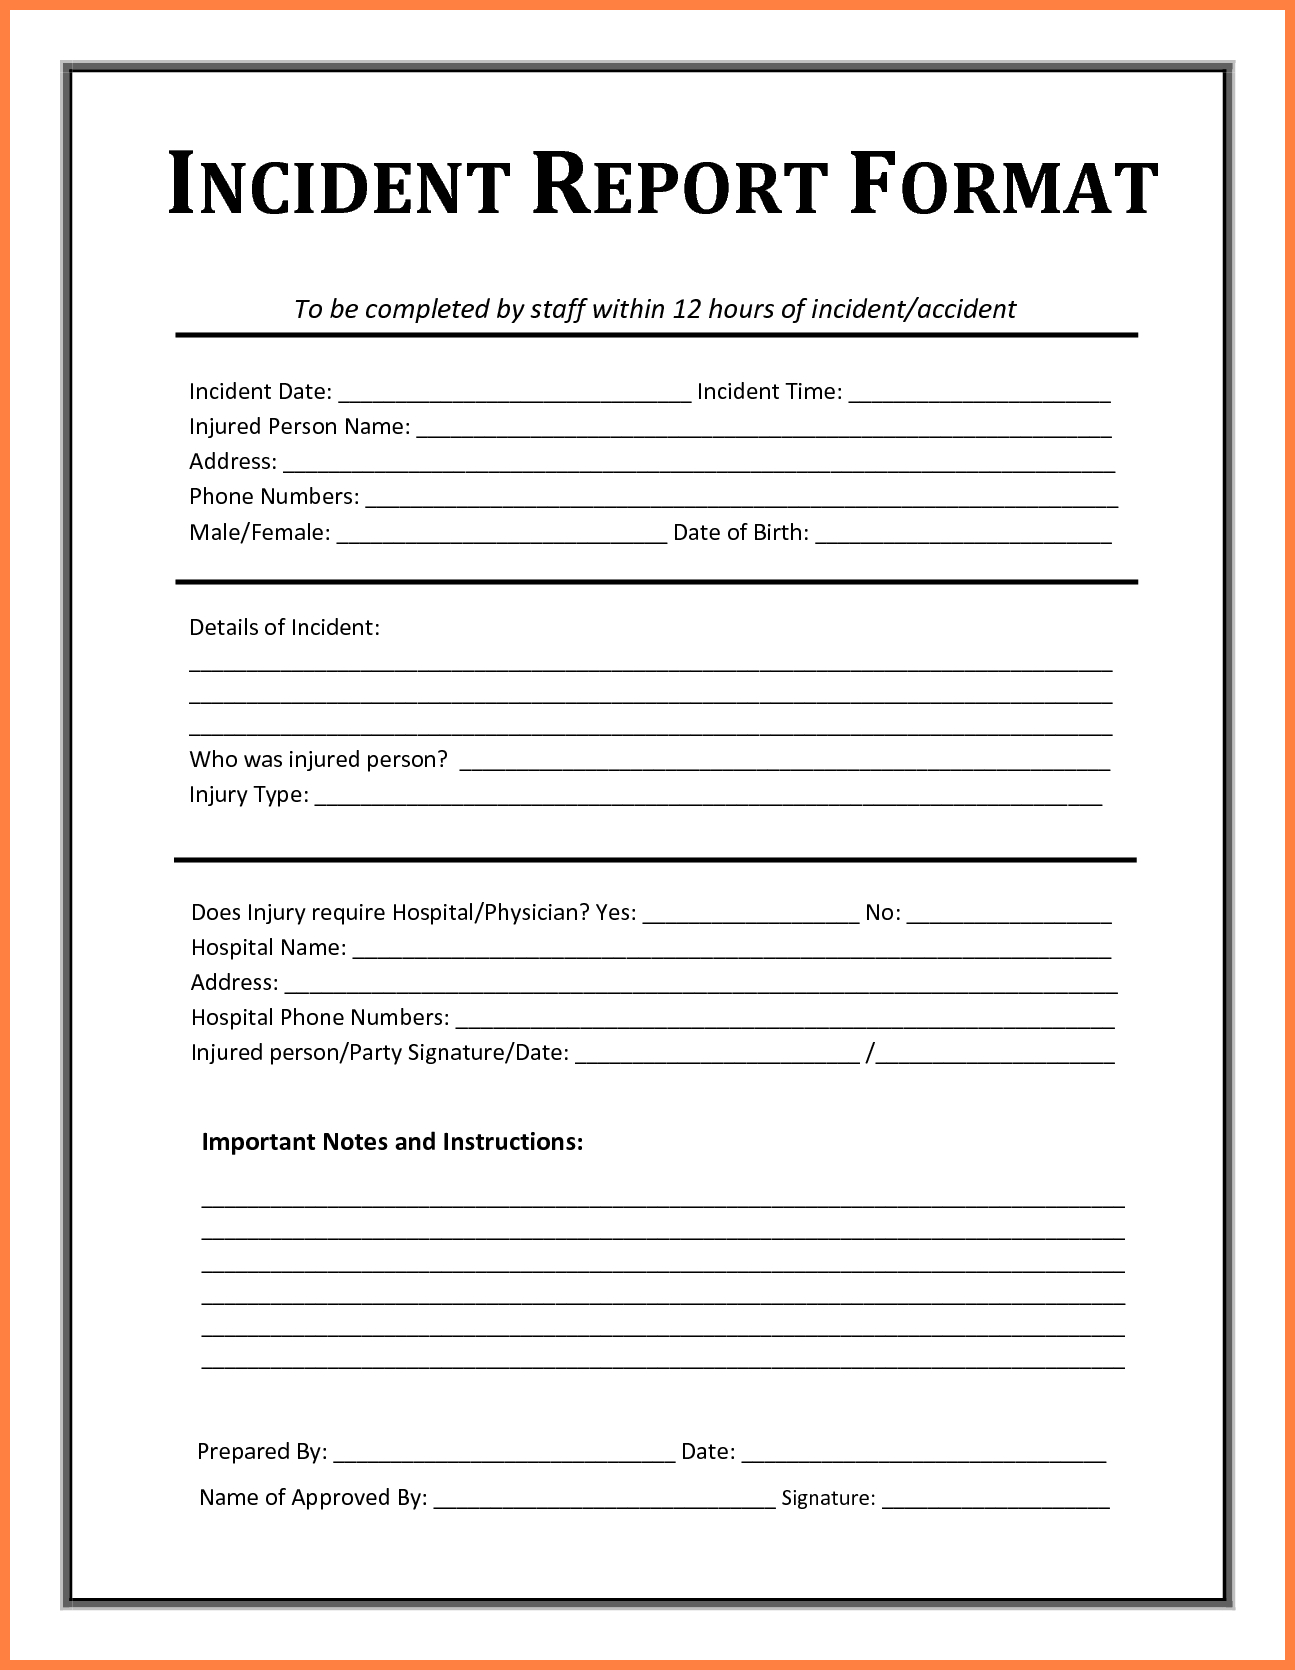 Accident Book Template Throughout Incident Report Book Template